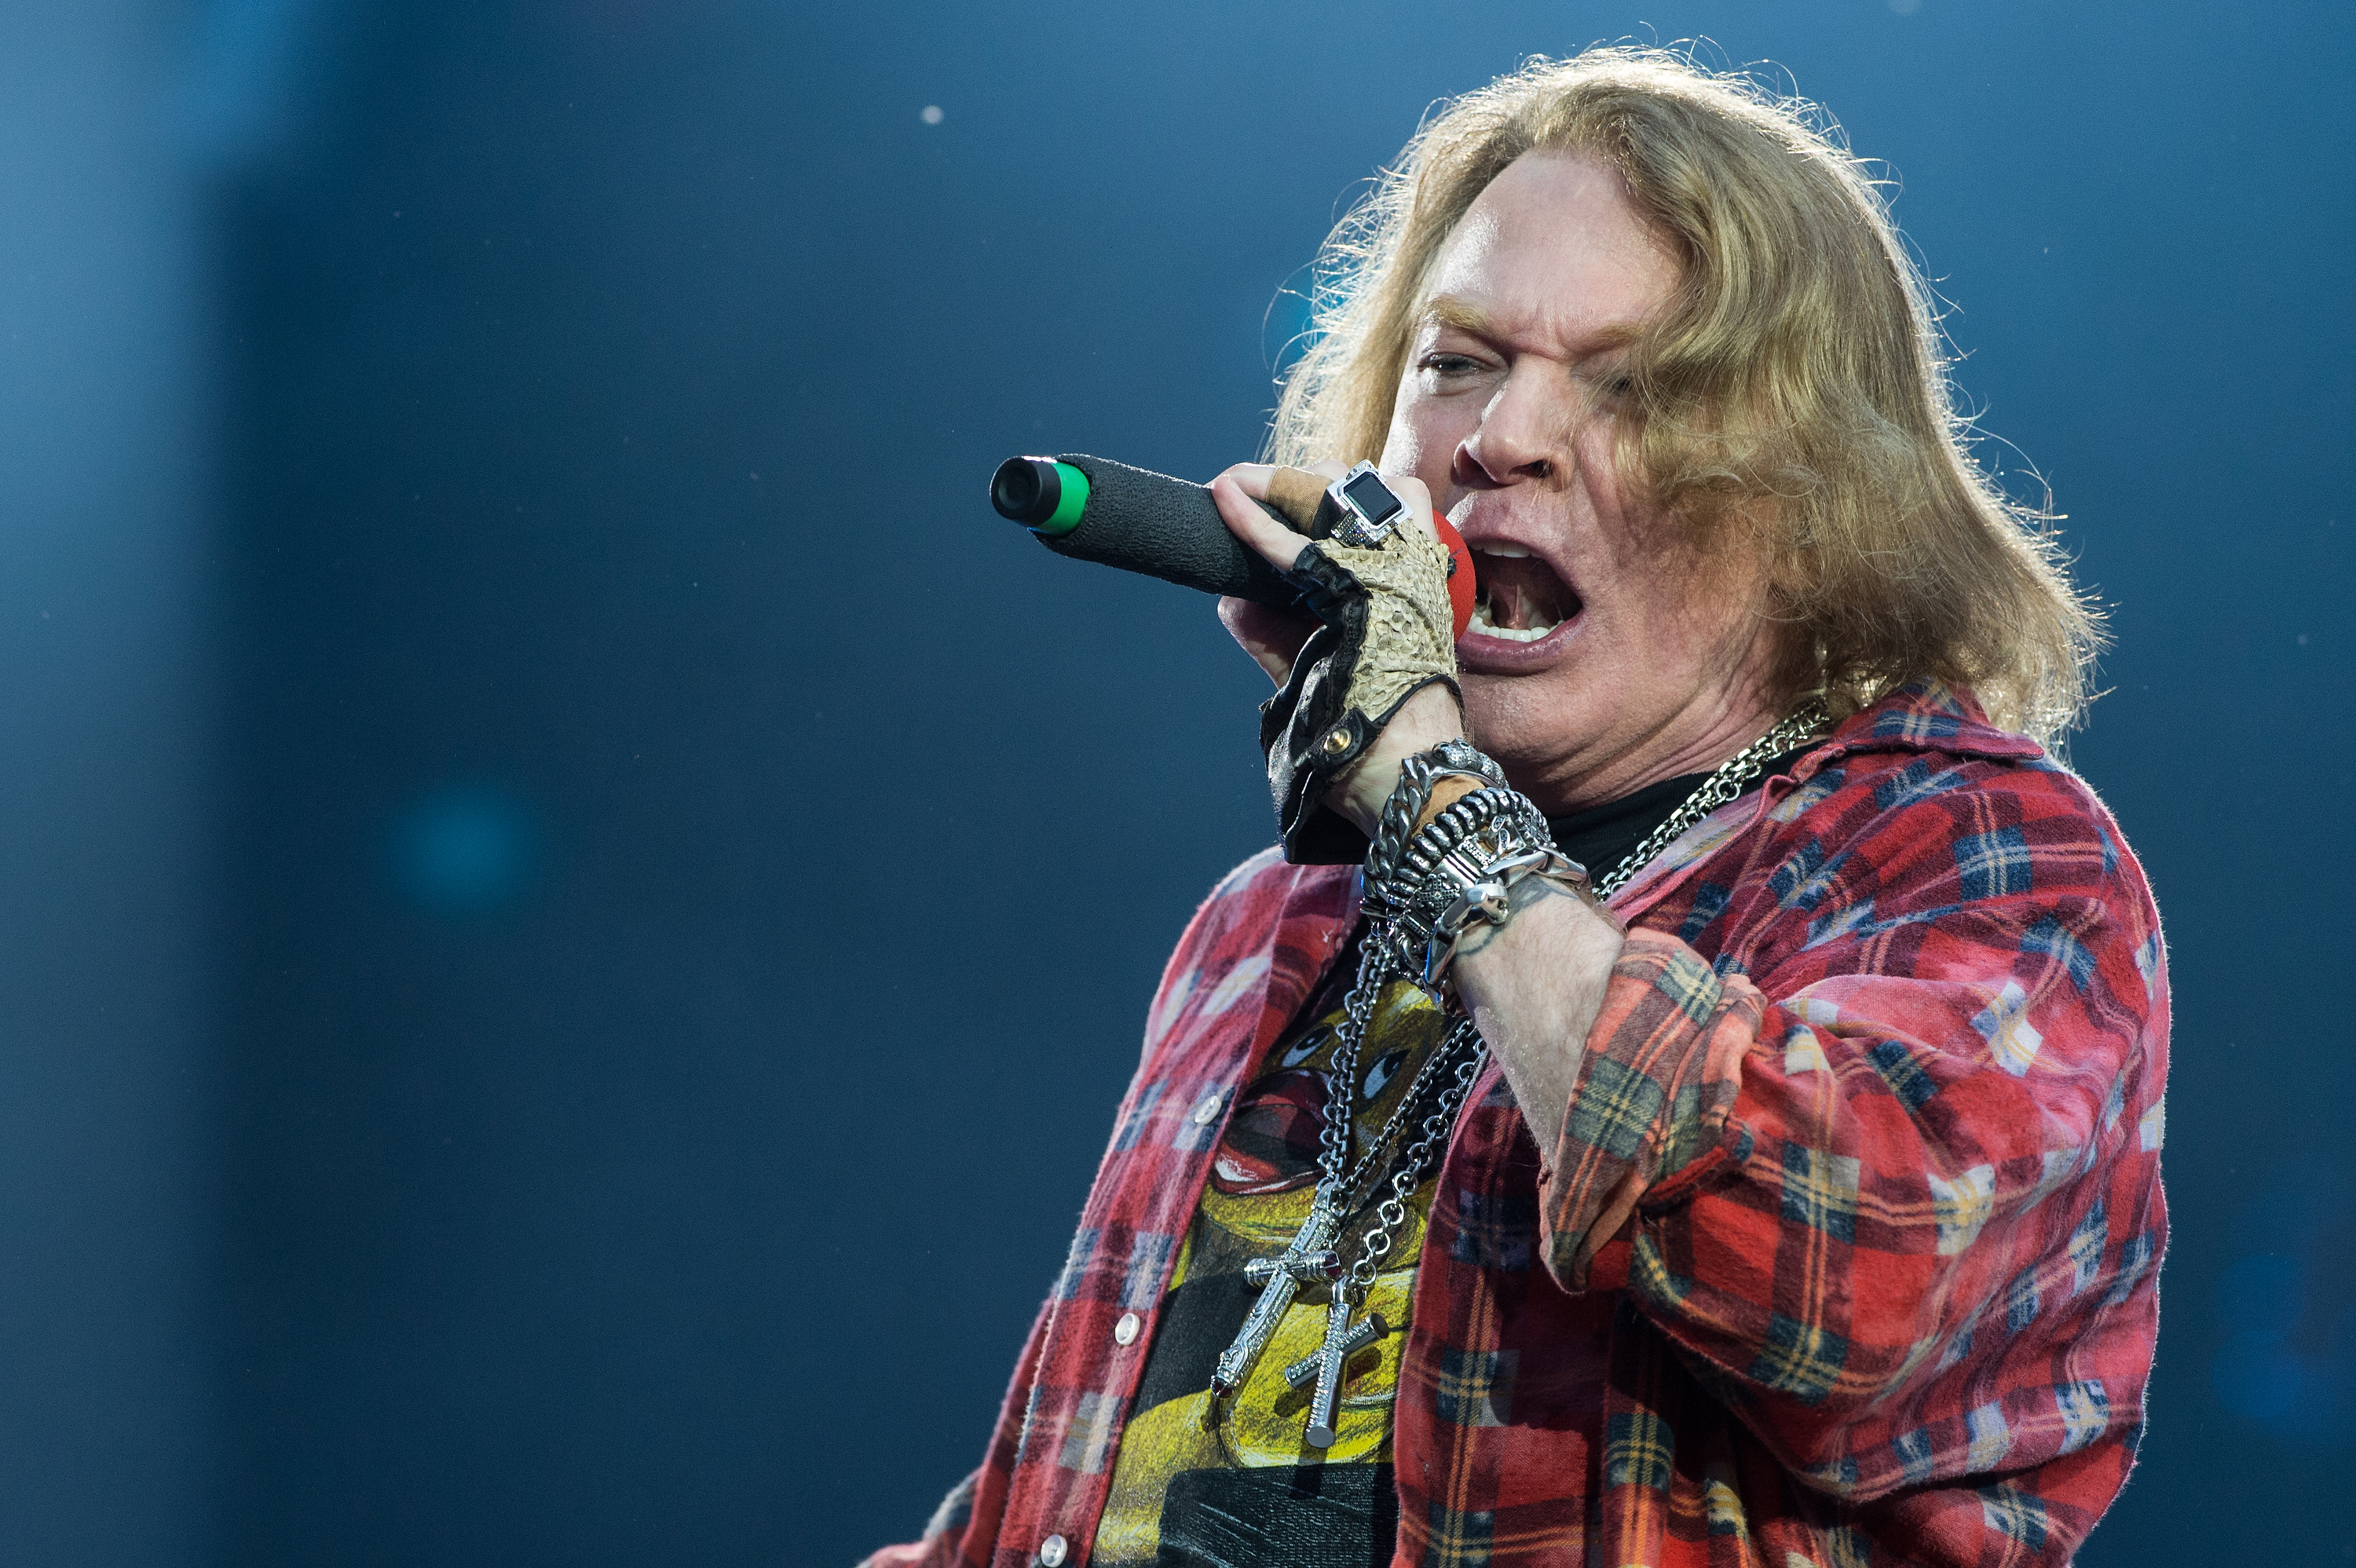 LONDON, ENGLAND - JUNE 04:  Axl Rose of AC/DC performs at Queen Elizabeth Olympic Park on June 5, 2016 in London, England.  (Photo by Brian Rasic/WireImage)